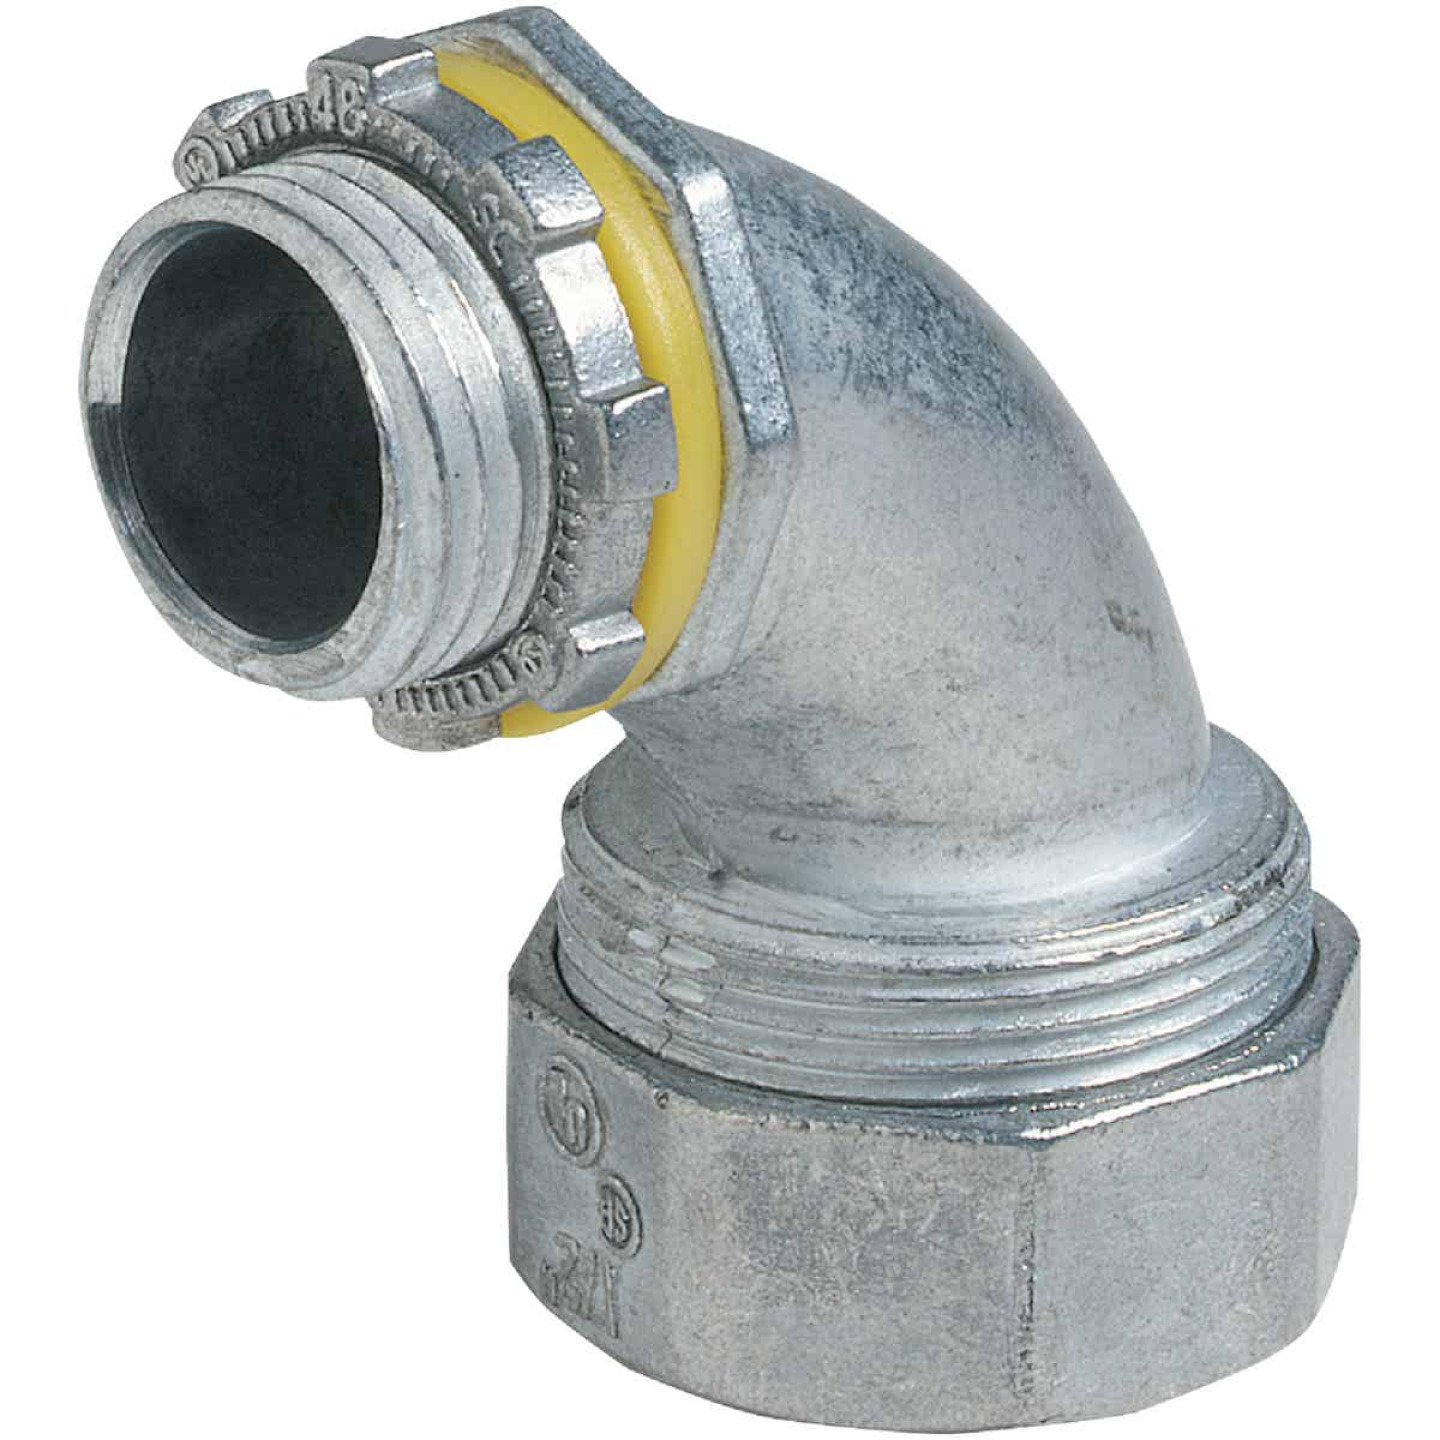 Halex 3/4 In. 90 Deg Die-Cast Zinc Liquid Tight Connector Image 1